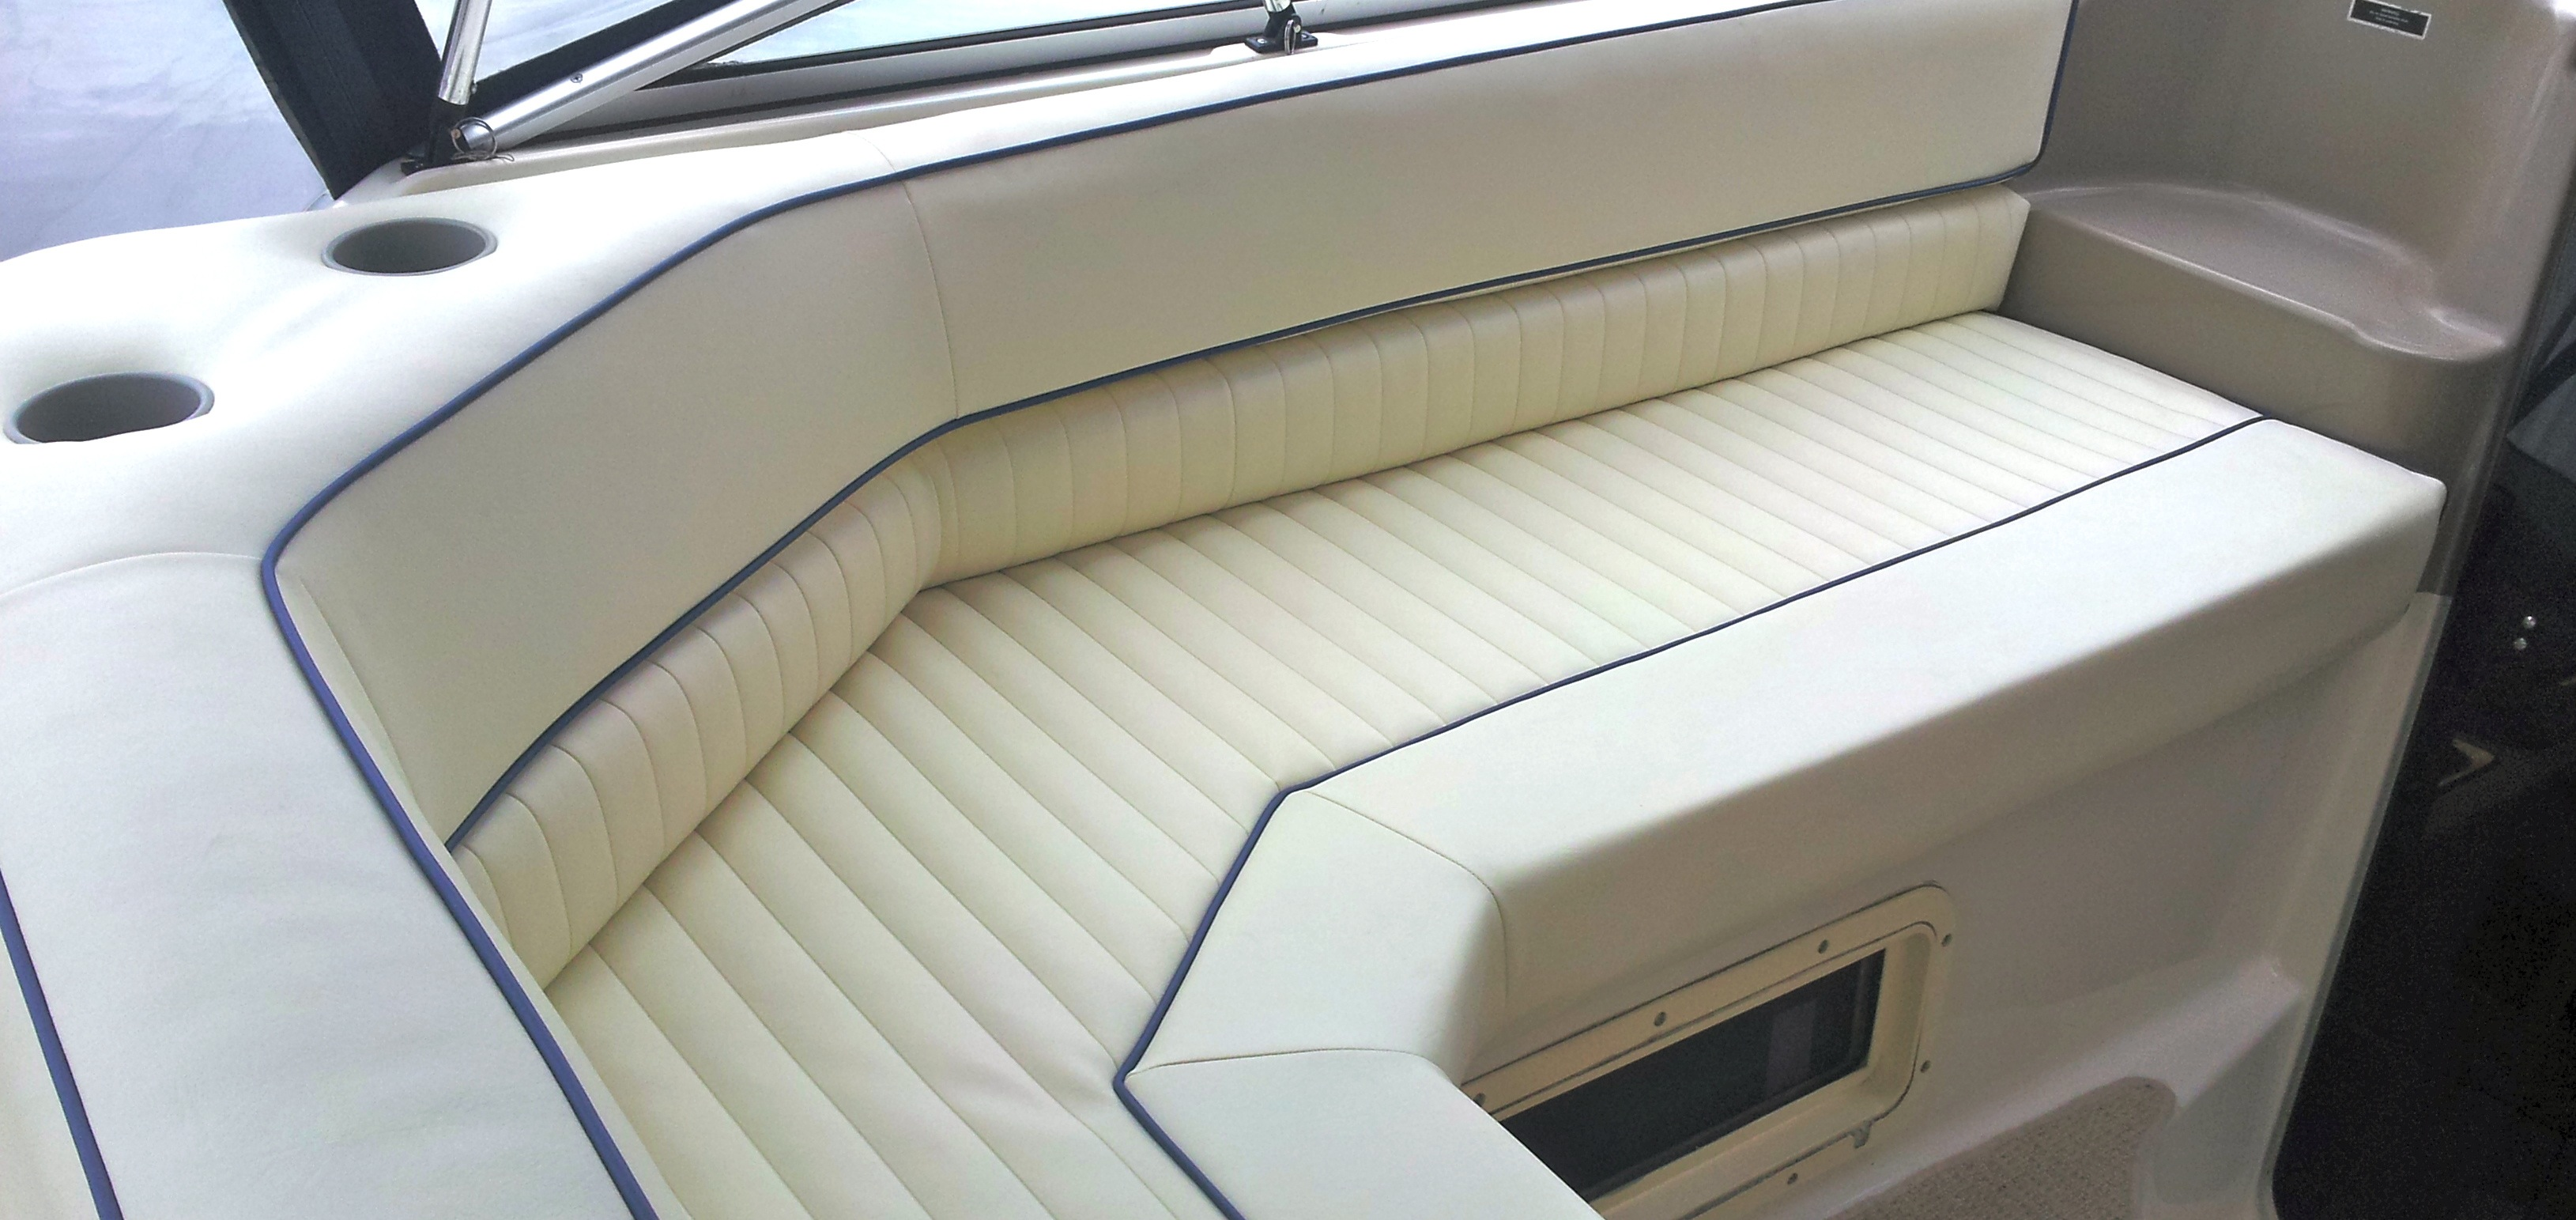 The Advantages of Using Marine Foam on Your Boat